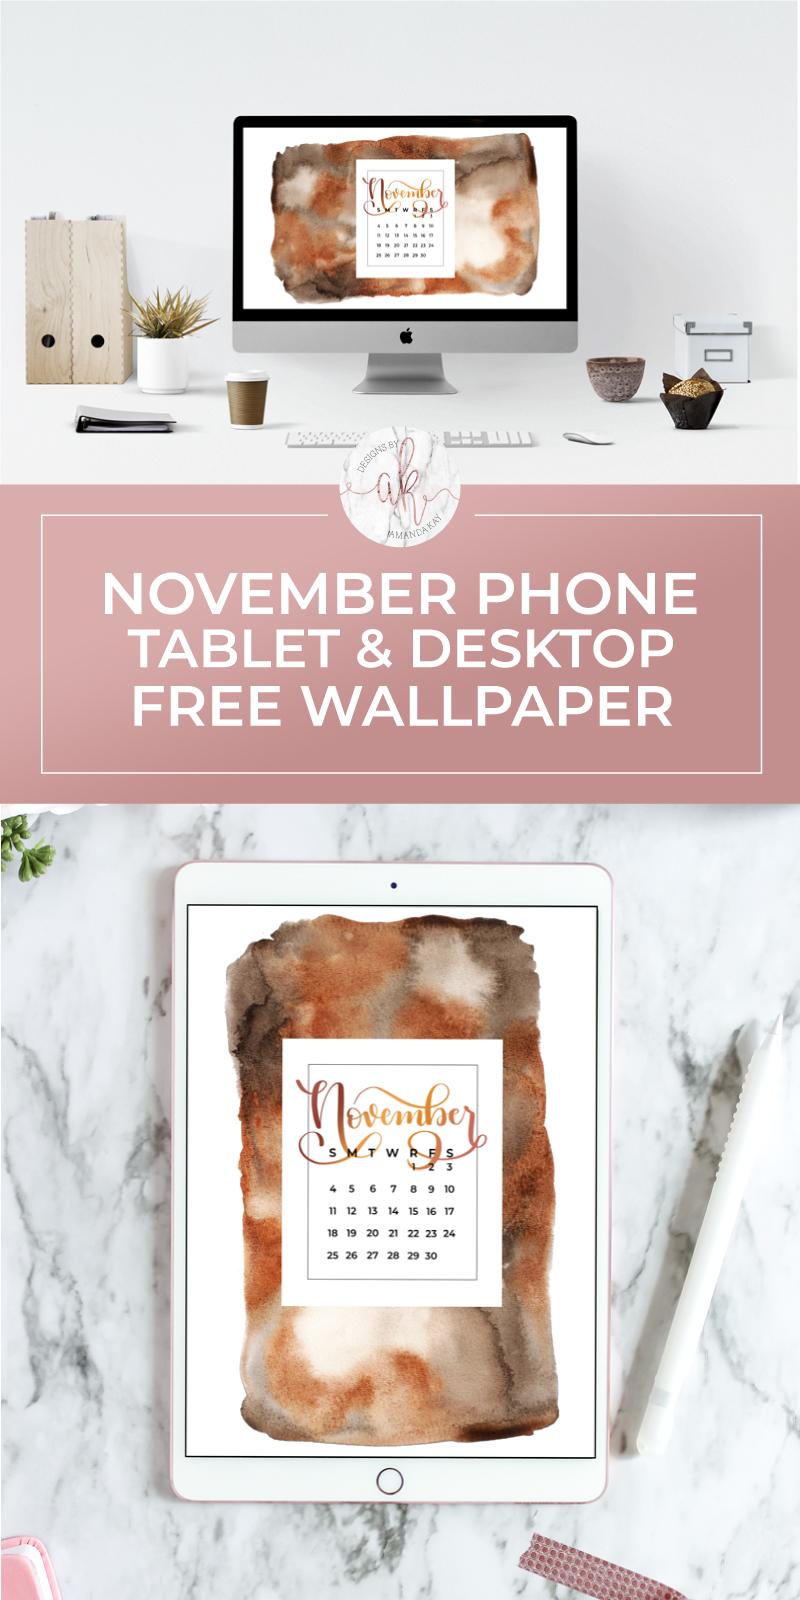 Give your devices a fresh look with a new 2018 November Free Wallpaper. Download it for your phone, tablet, computer or all three!